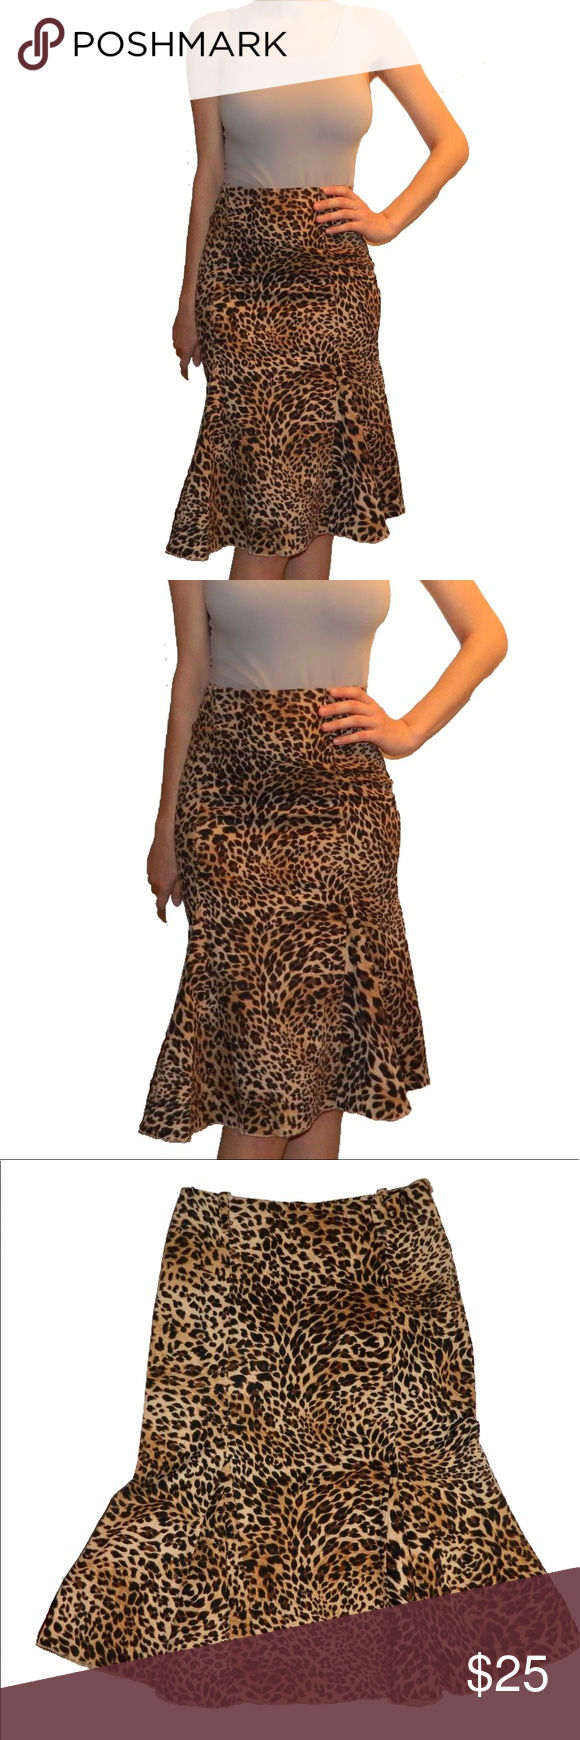 Leopard Print Skirt Bough in a boutique, worn only a couple times. Skirts Midi